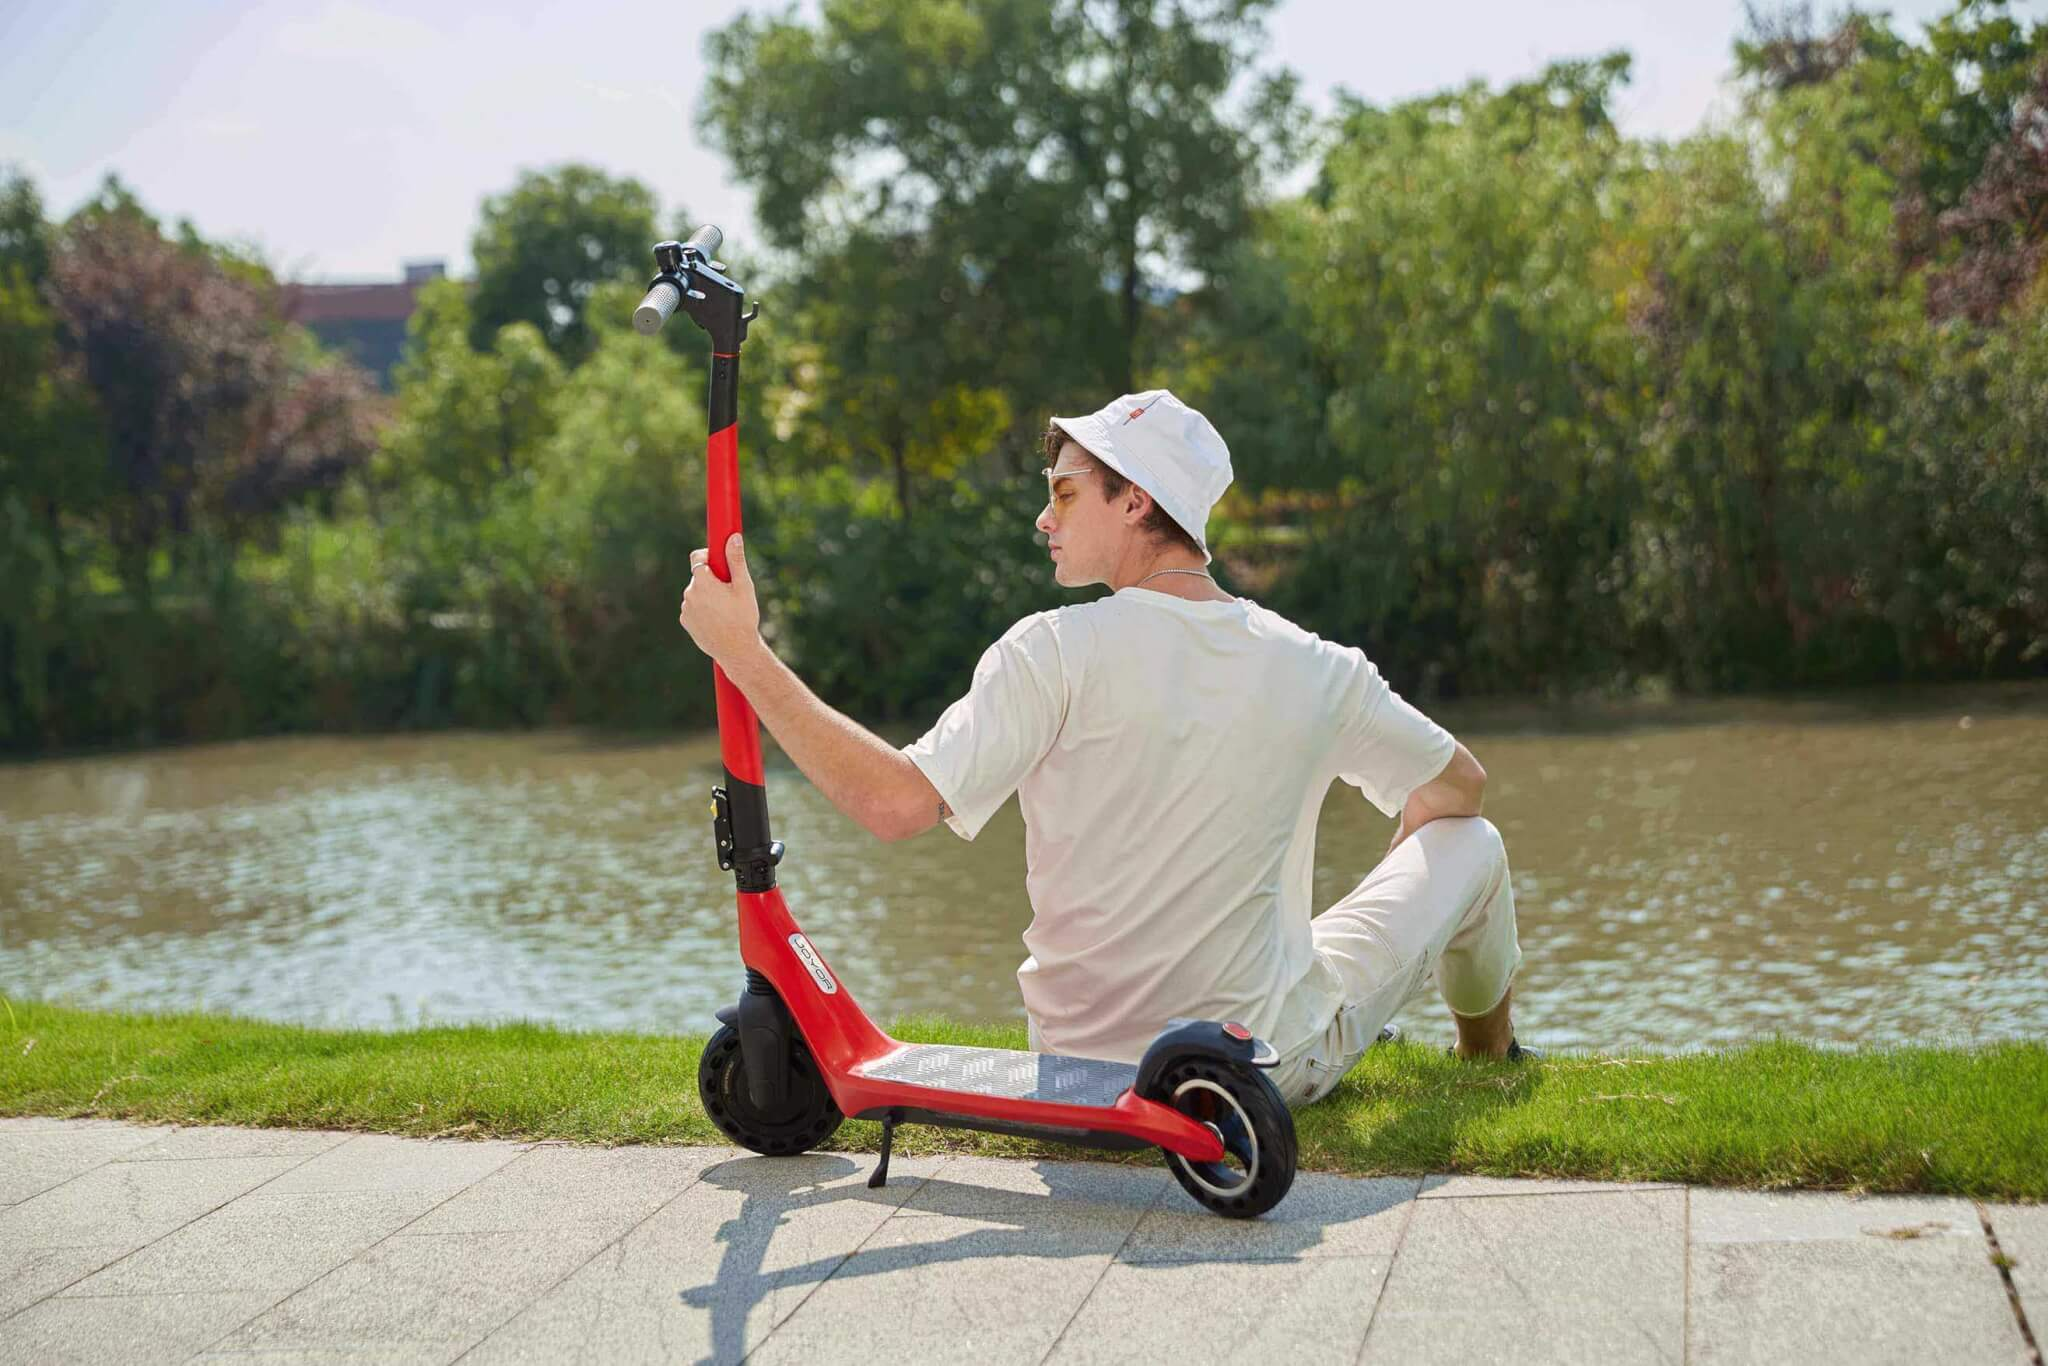 oyor Electric Scooter Model A3/A5